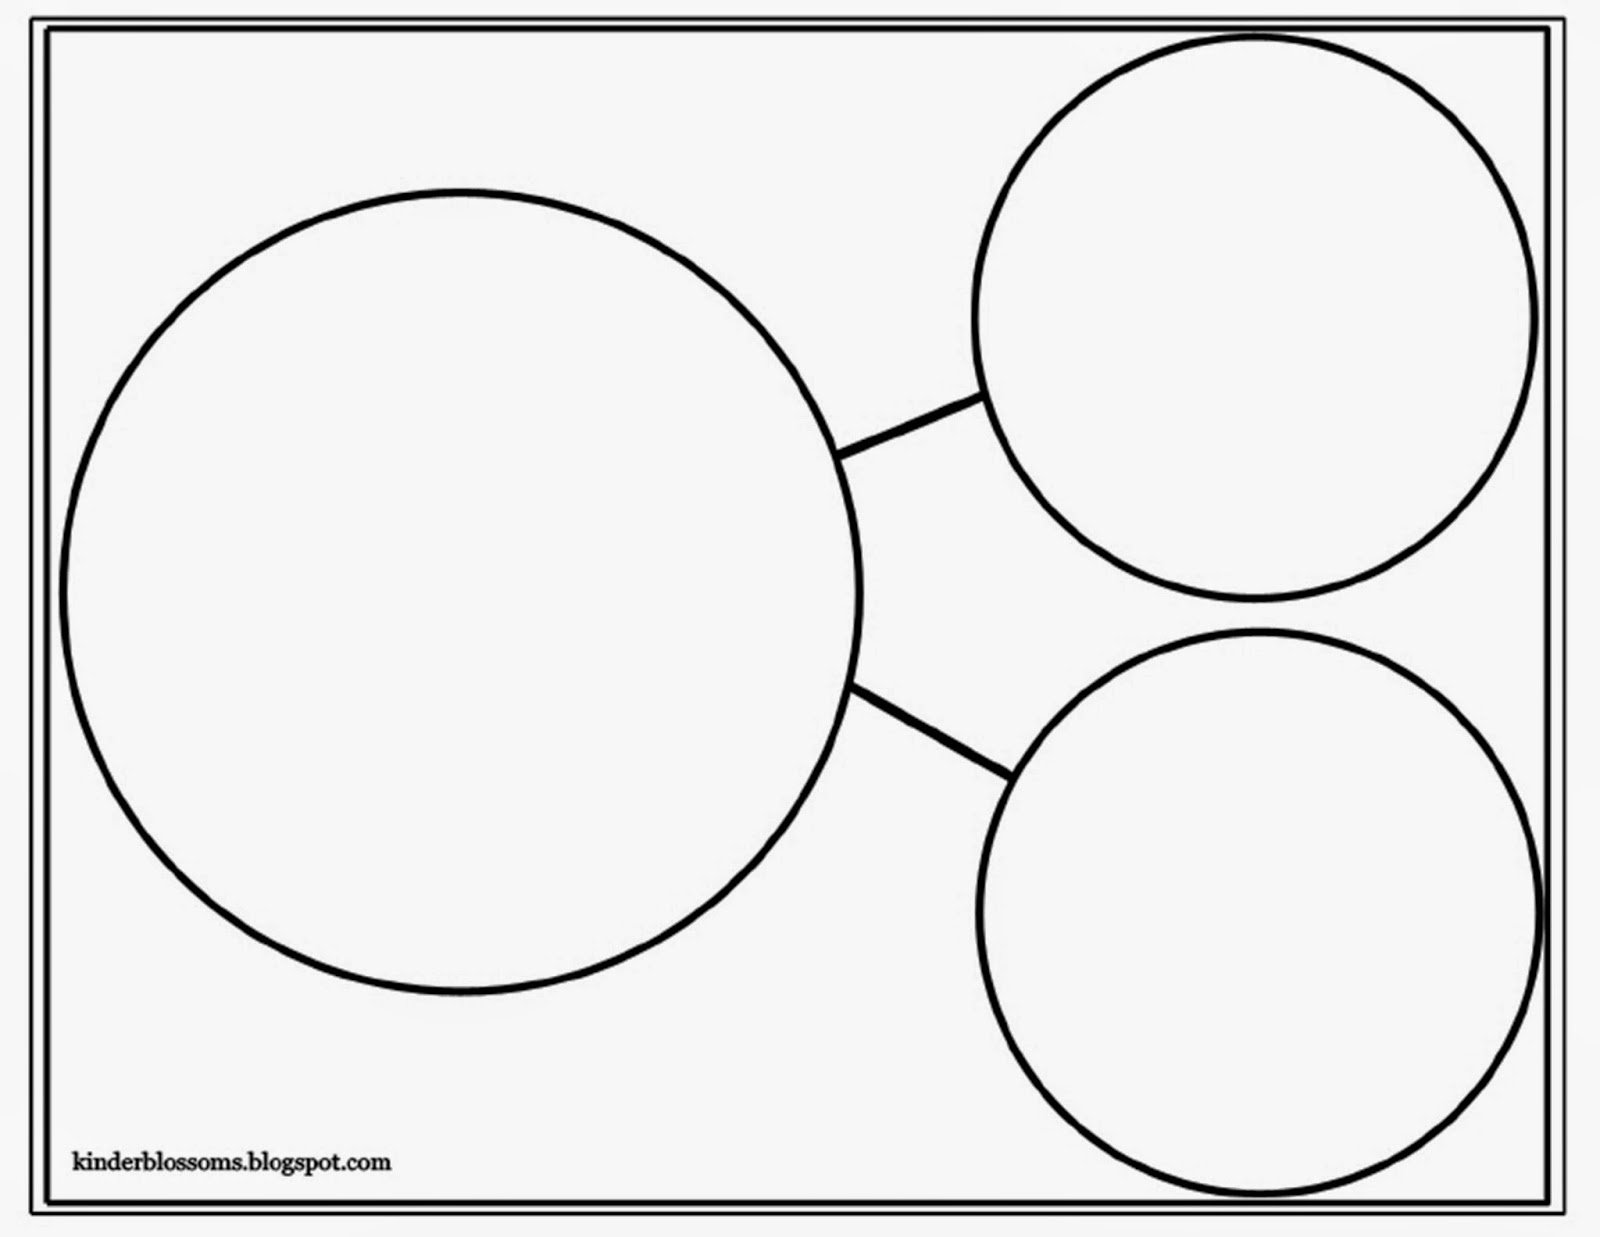 Large Number Bond Template by Kelly G | Teachers Pay Teachers